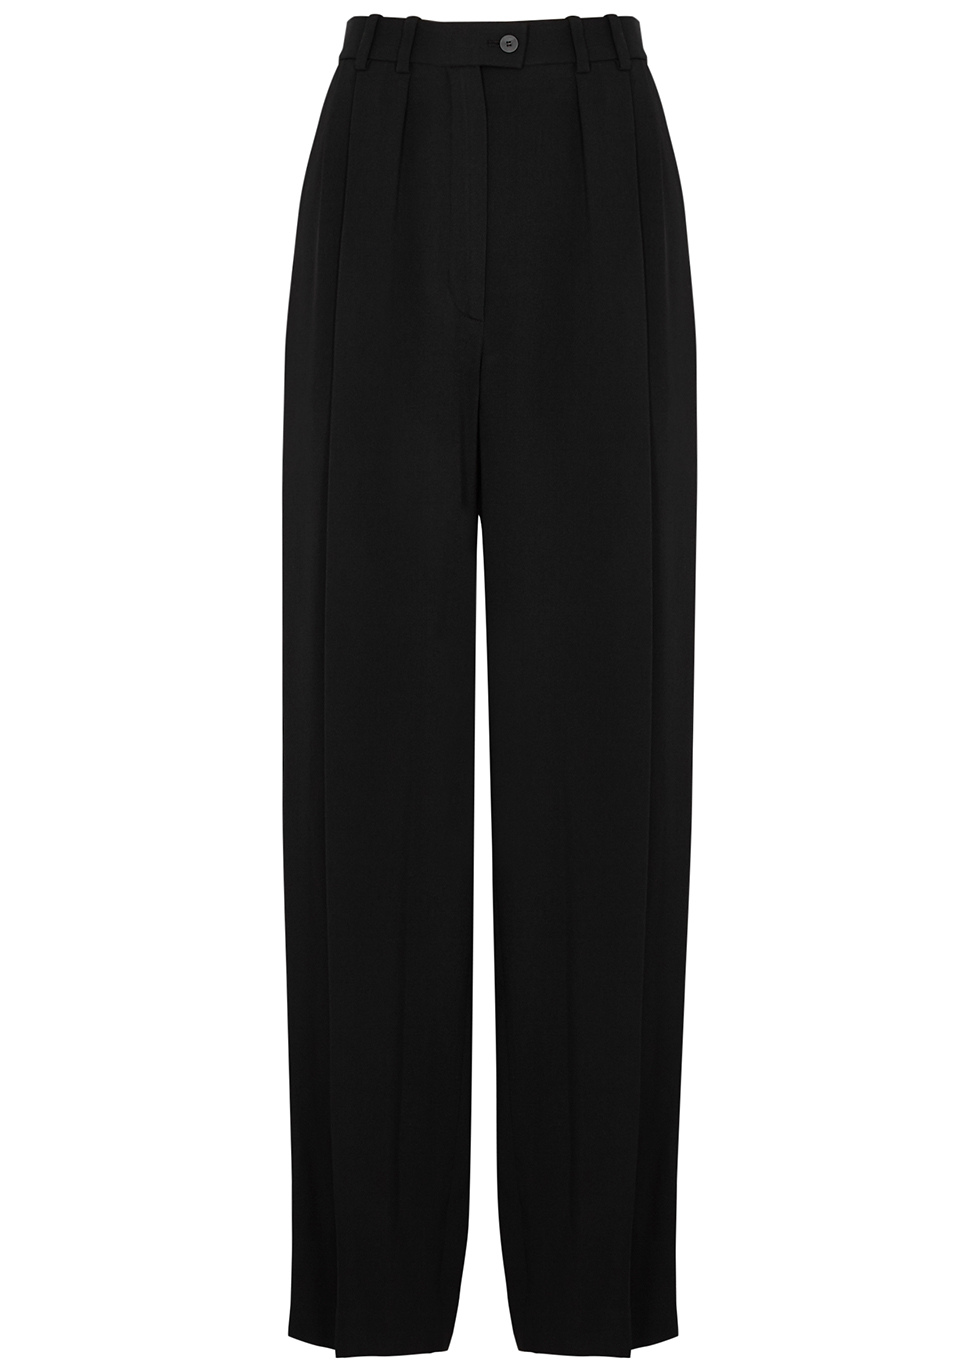 Lariana black tapered trousers